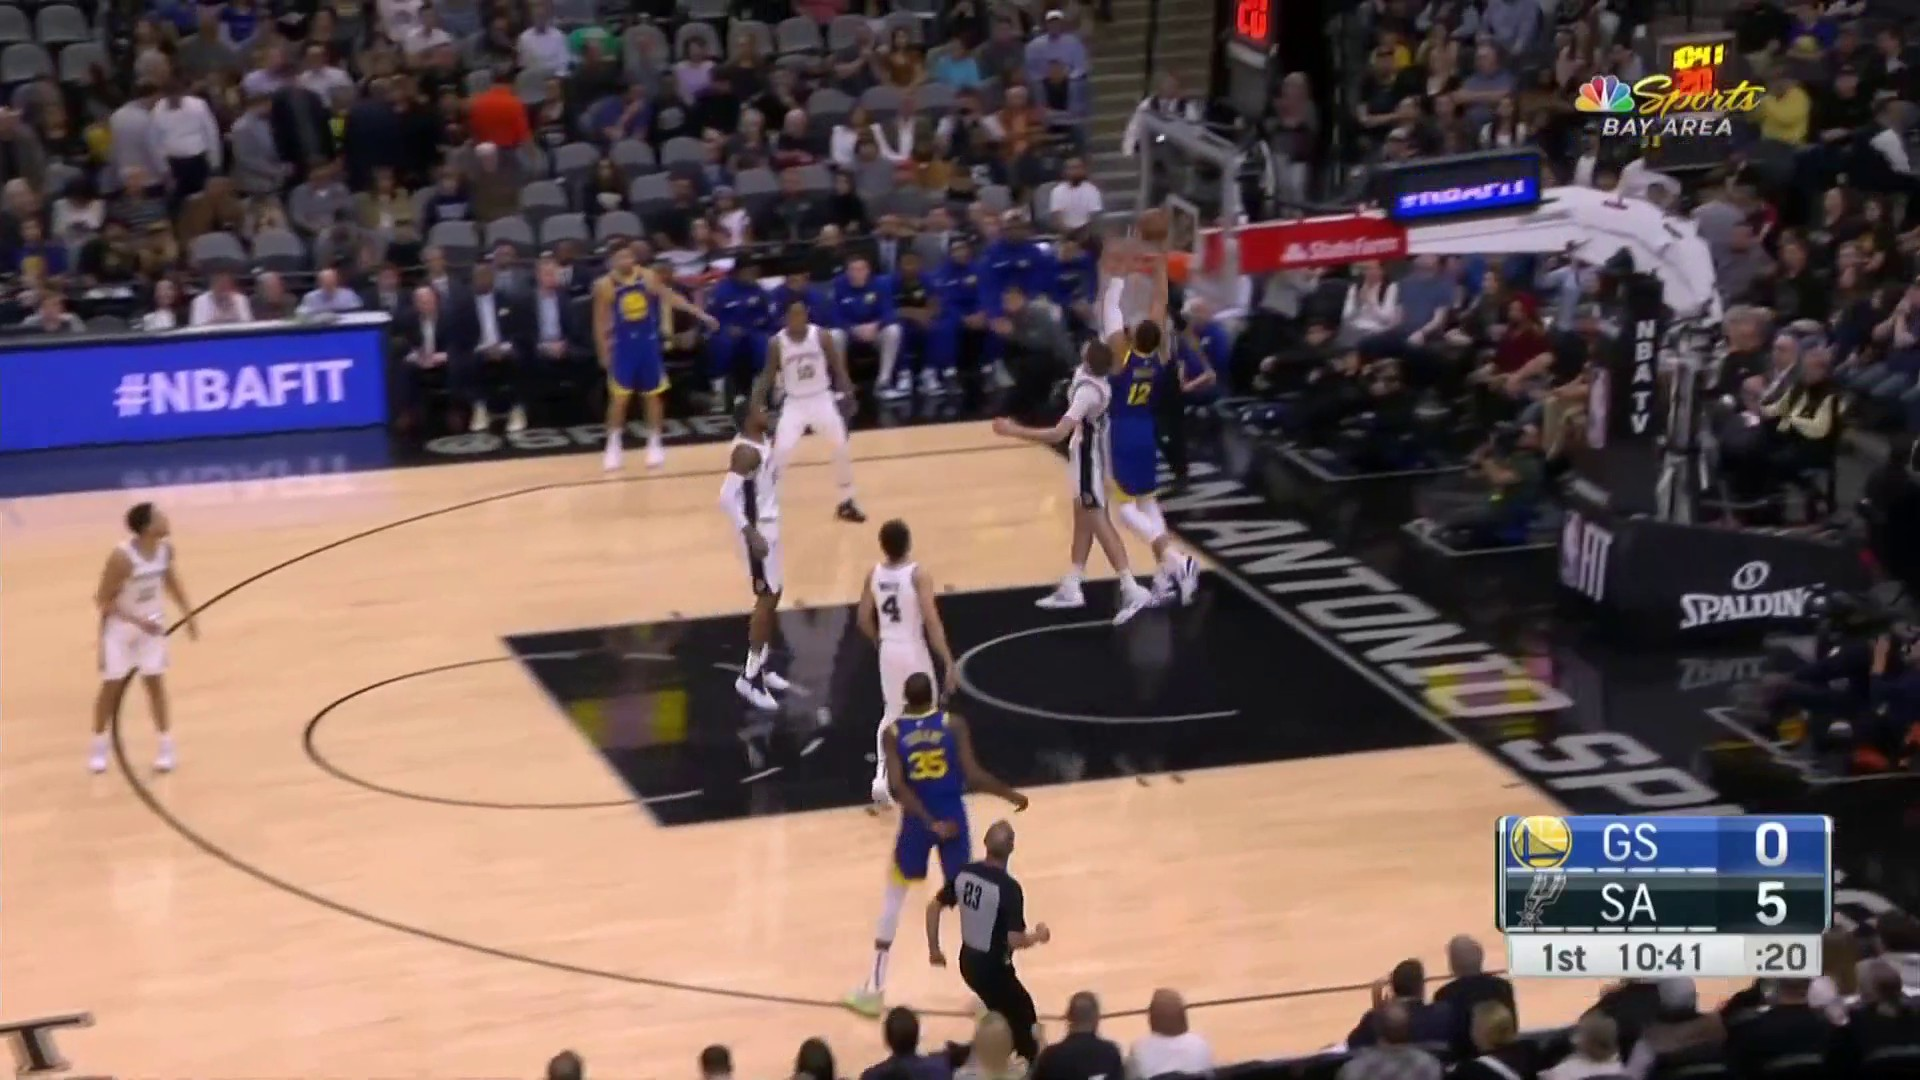 Andrew Bogut scores first points in Warriors' return off Curry's alley-oop